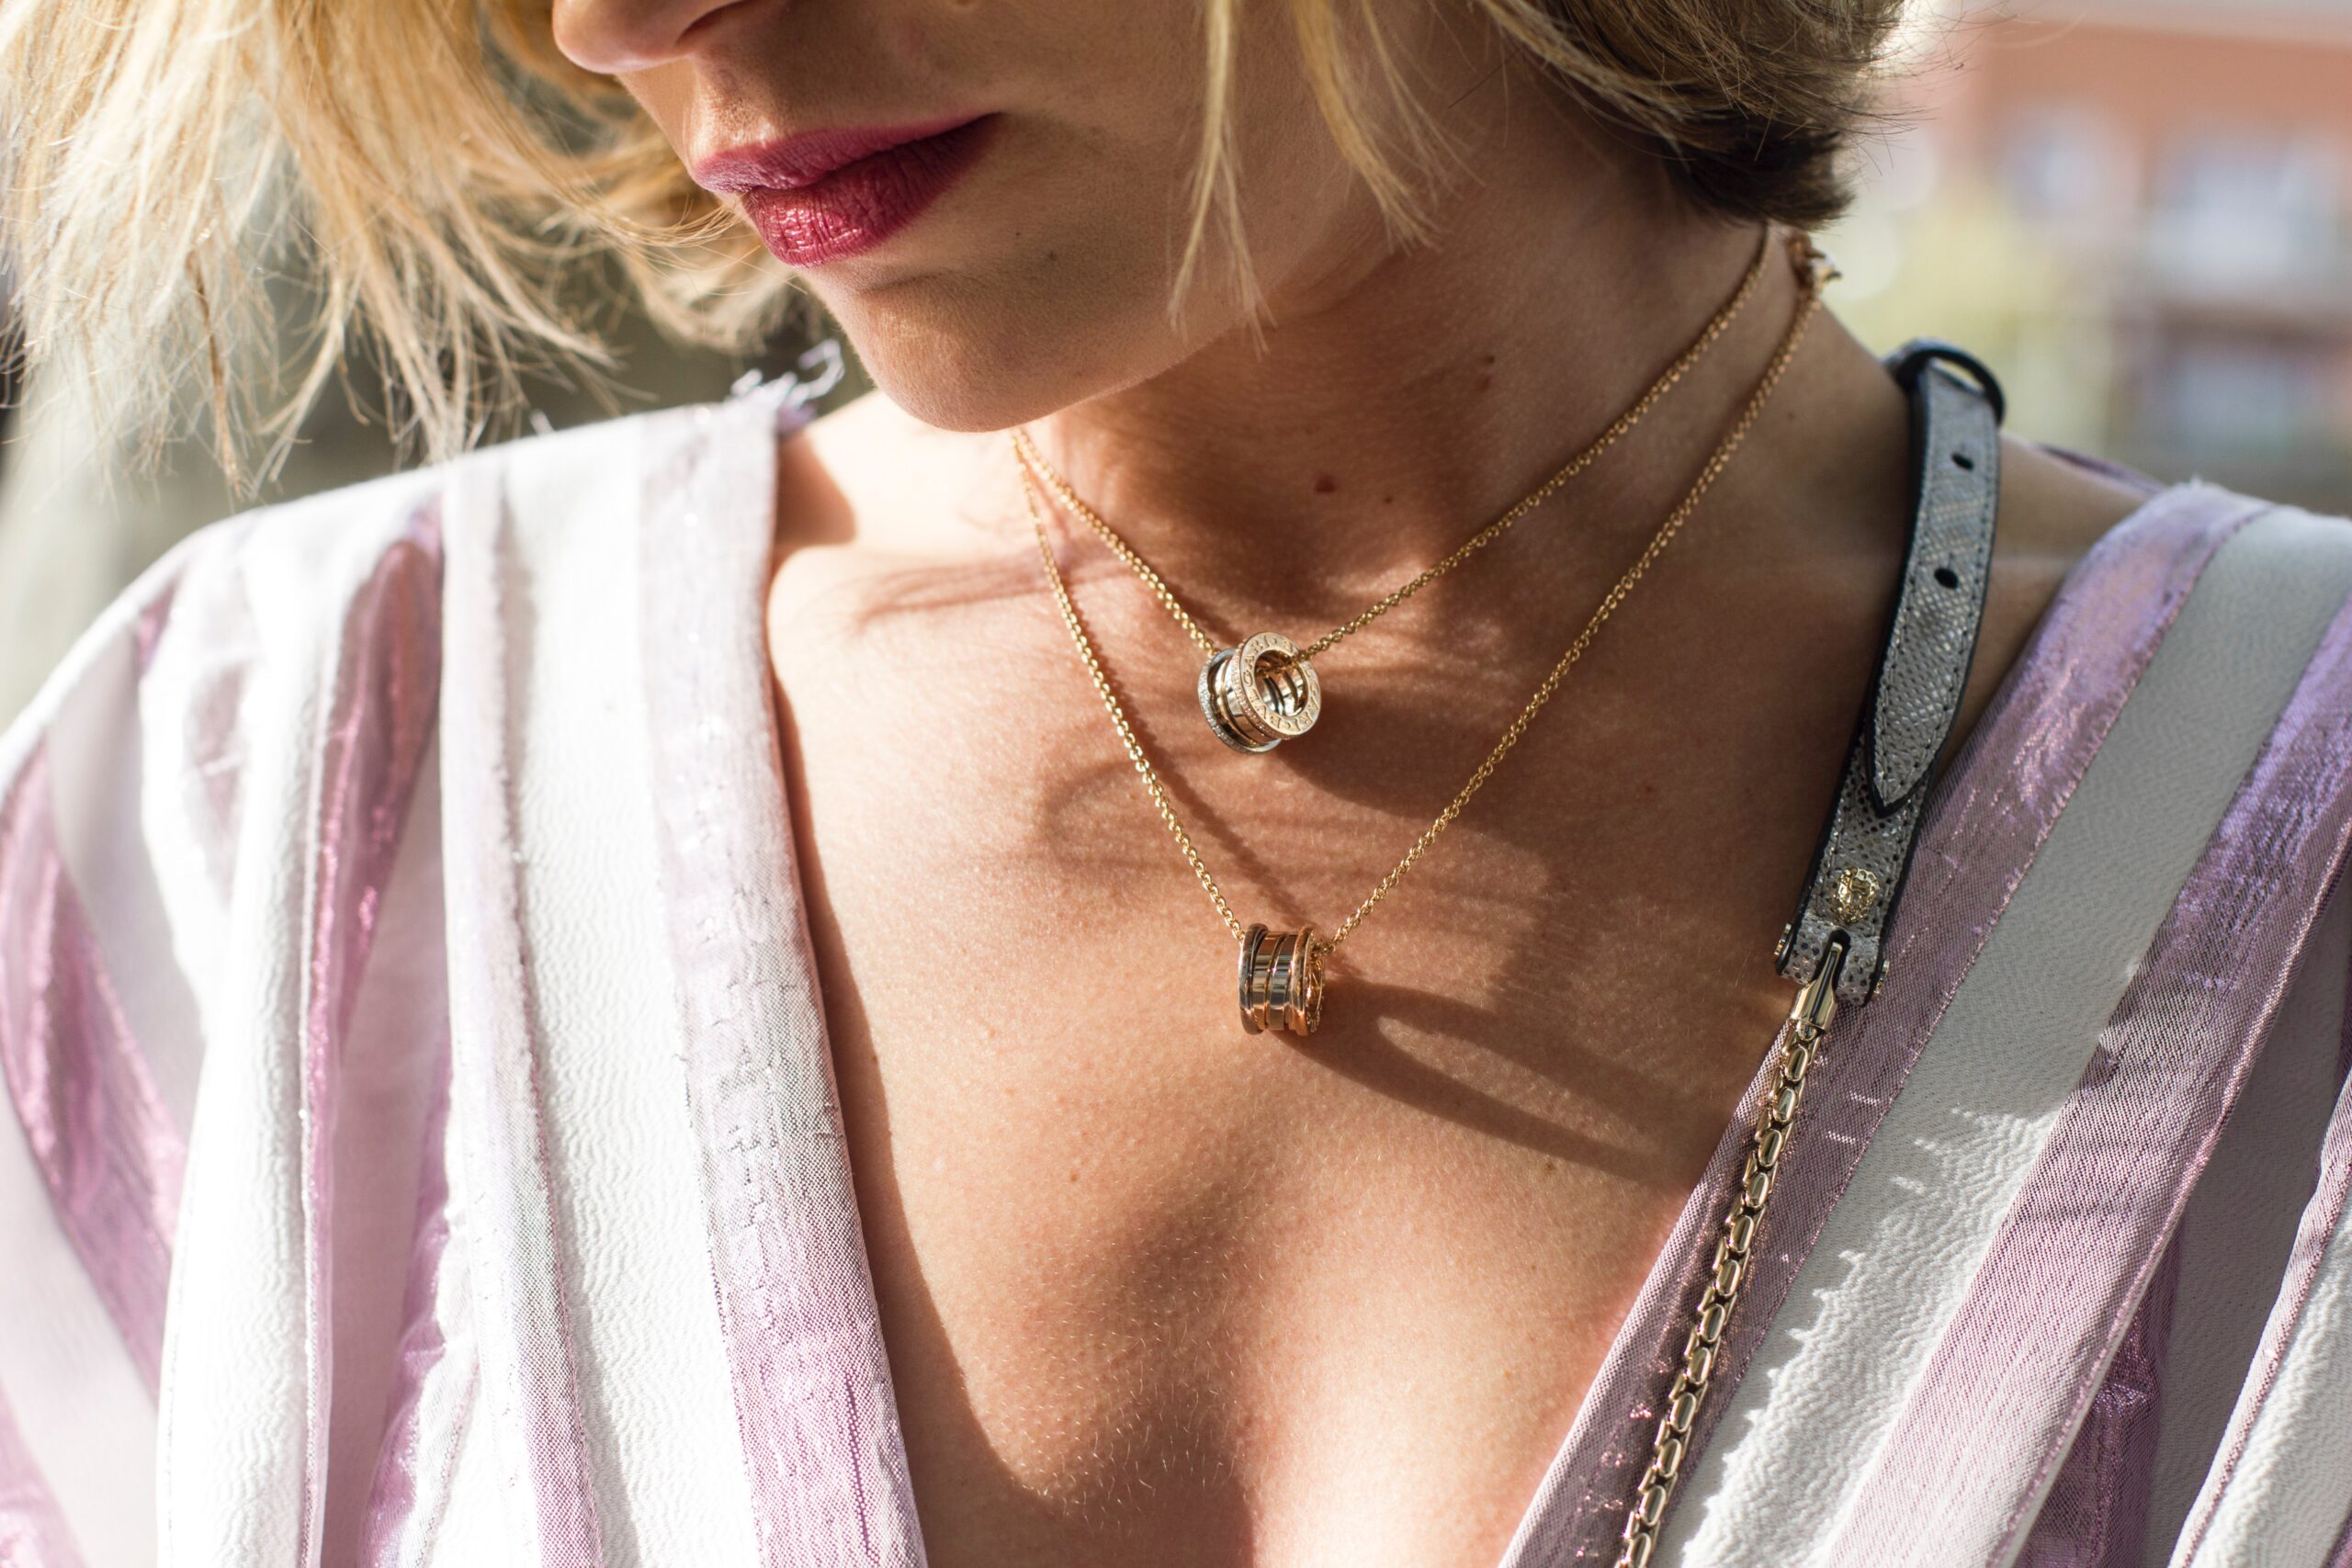 woman wearing gold-colored ring pendant necklaces